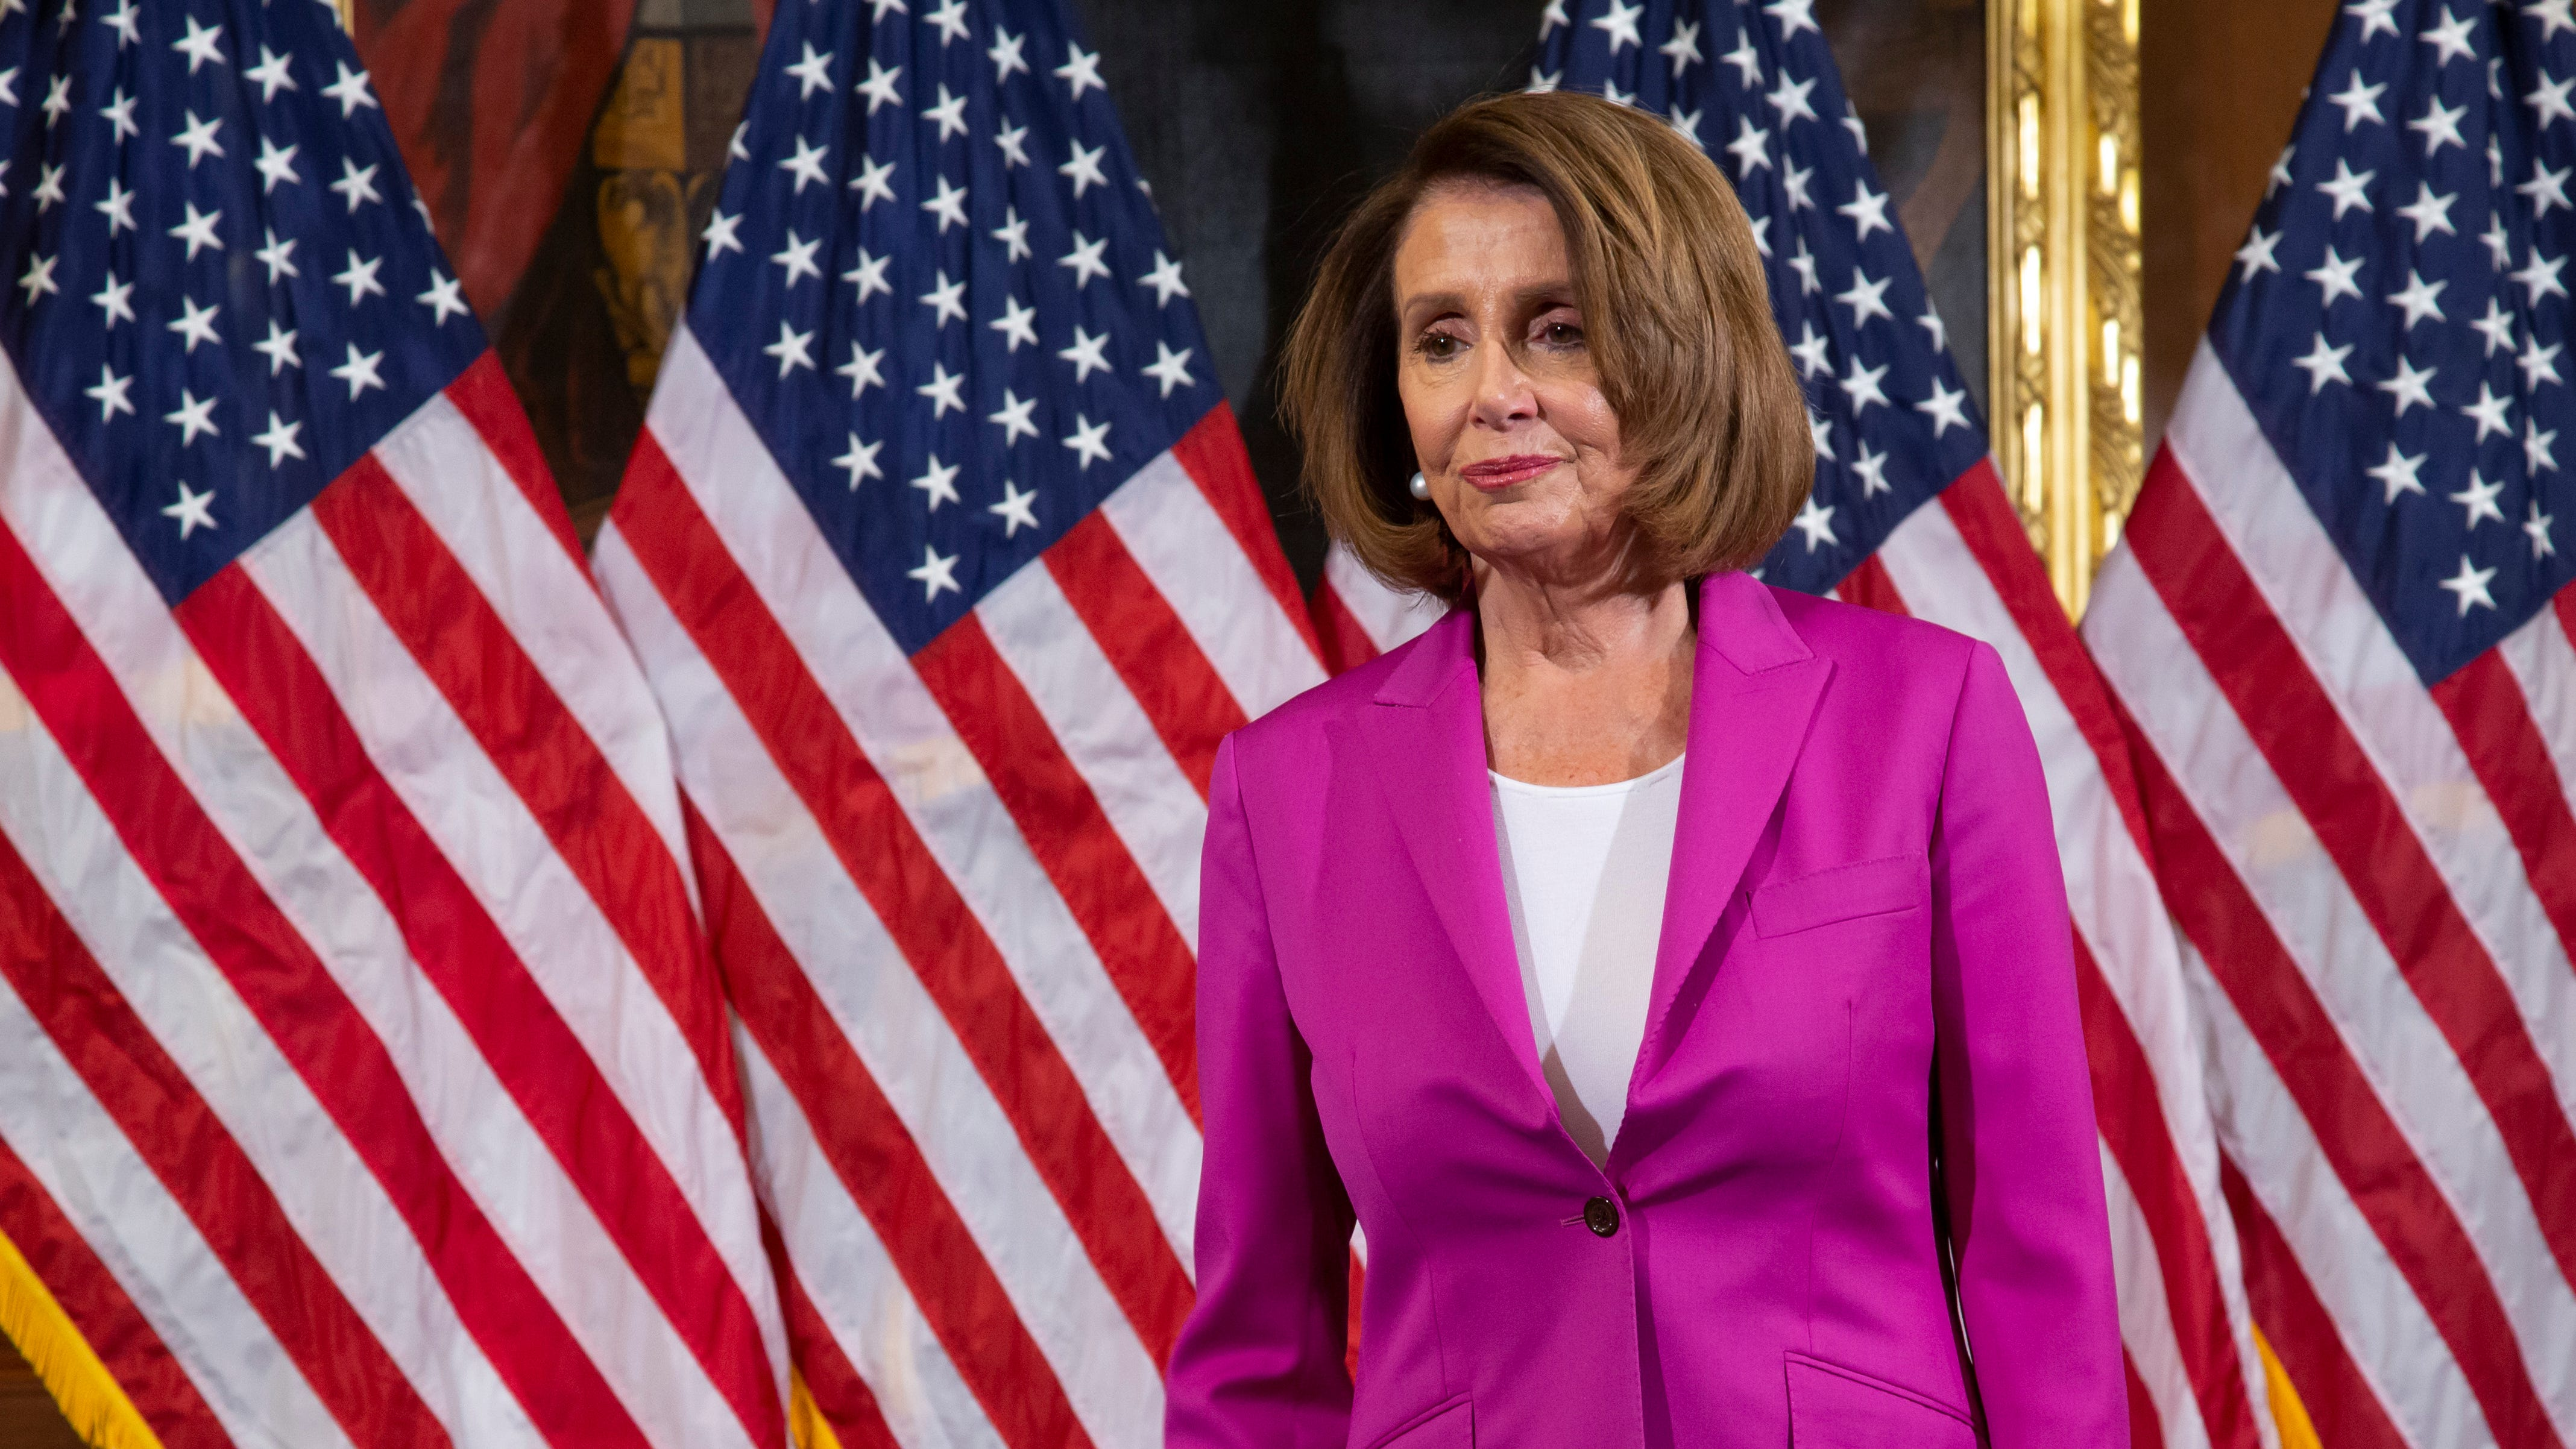 Speaker of the House Nancy Pelosi, D-Calif., waits for her new committee chairs to assemble for a formal photo at the Capitol in Washington, Friday, Jan. 11, 2019. (AP Photo/J. Scott Applewhite) ORG XMIT: DCSA109